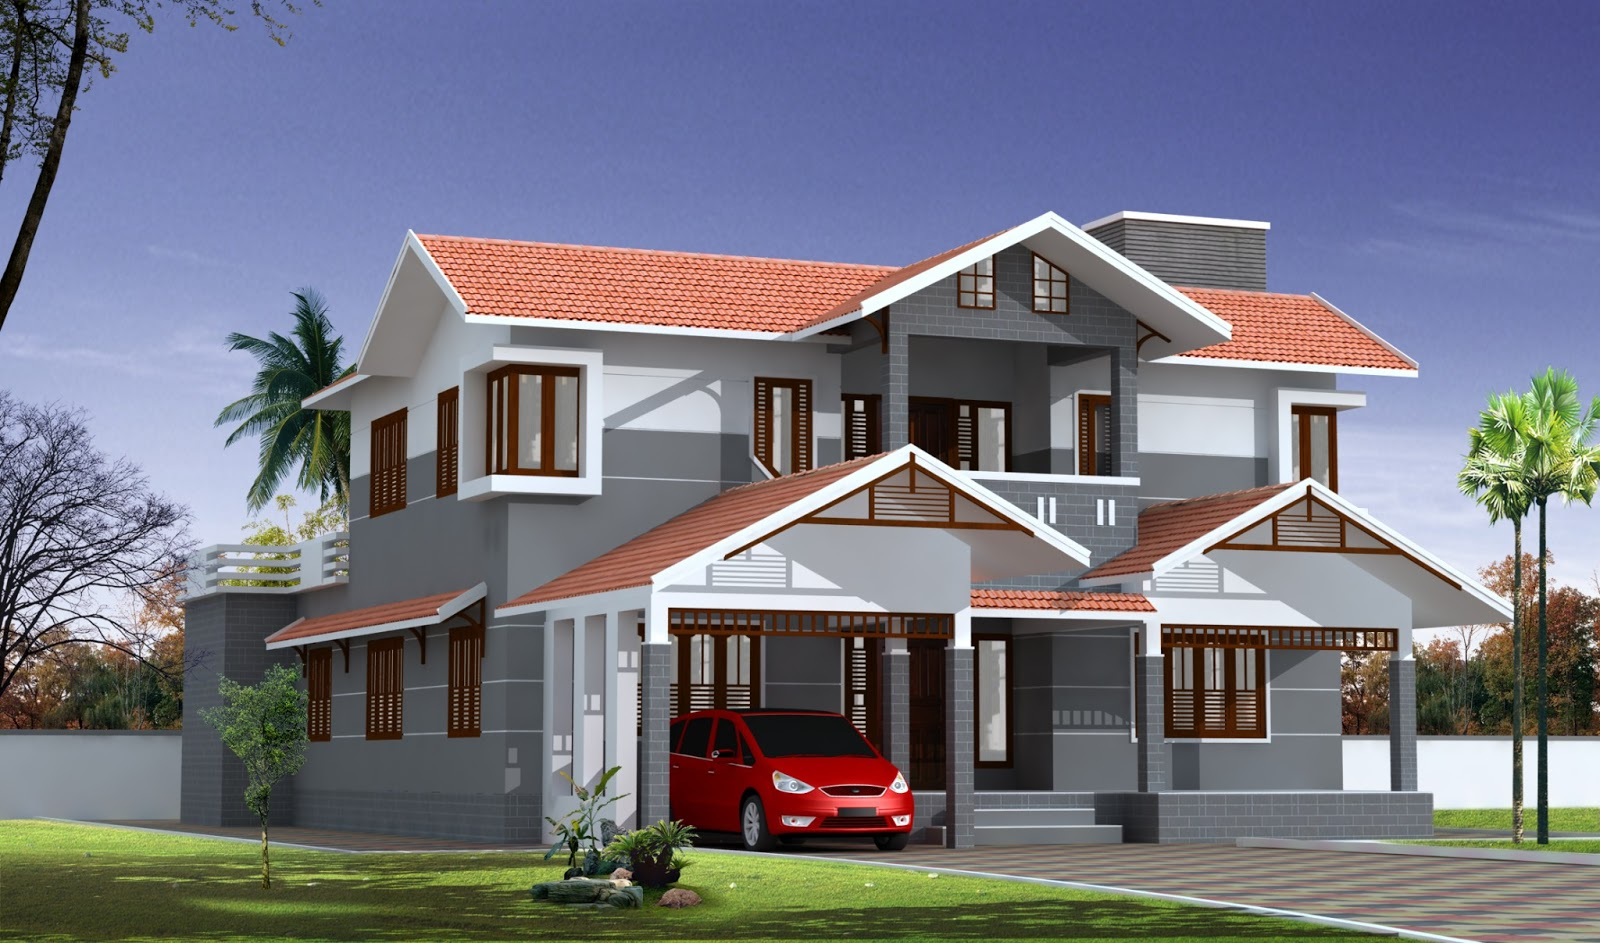 Build a building latest home designs for Building design images